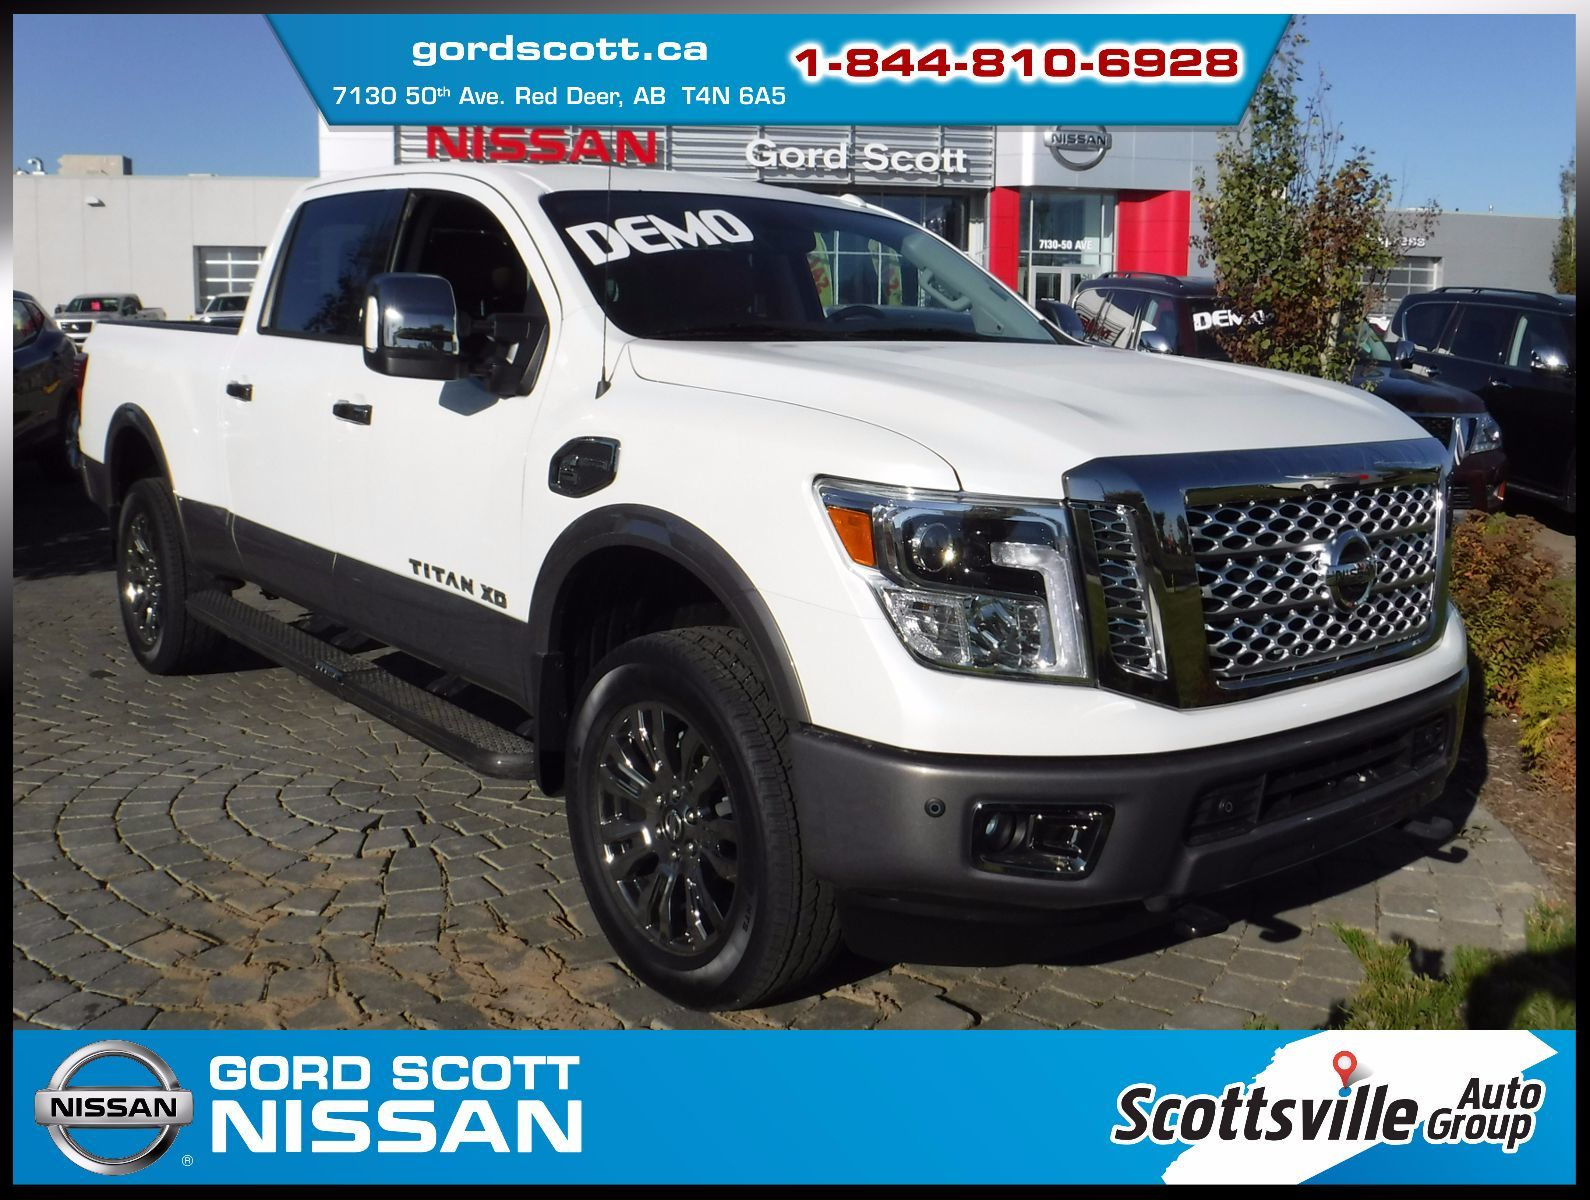 new 2017 nissan titan xd diesel platinum reserve w two tone paint for sale in red deer gord. Black Bedroom Furniture Sets. Home Design Ideas